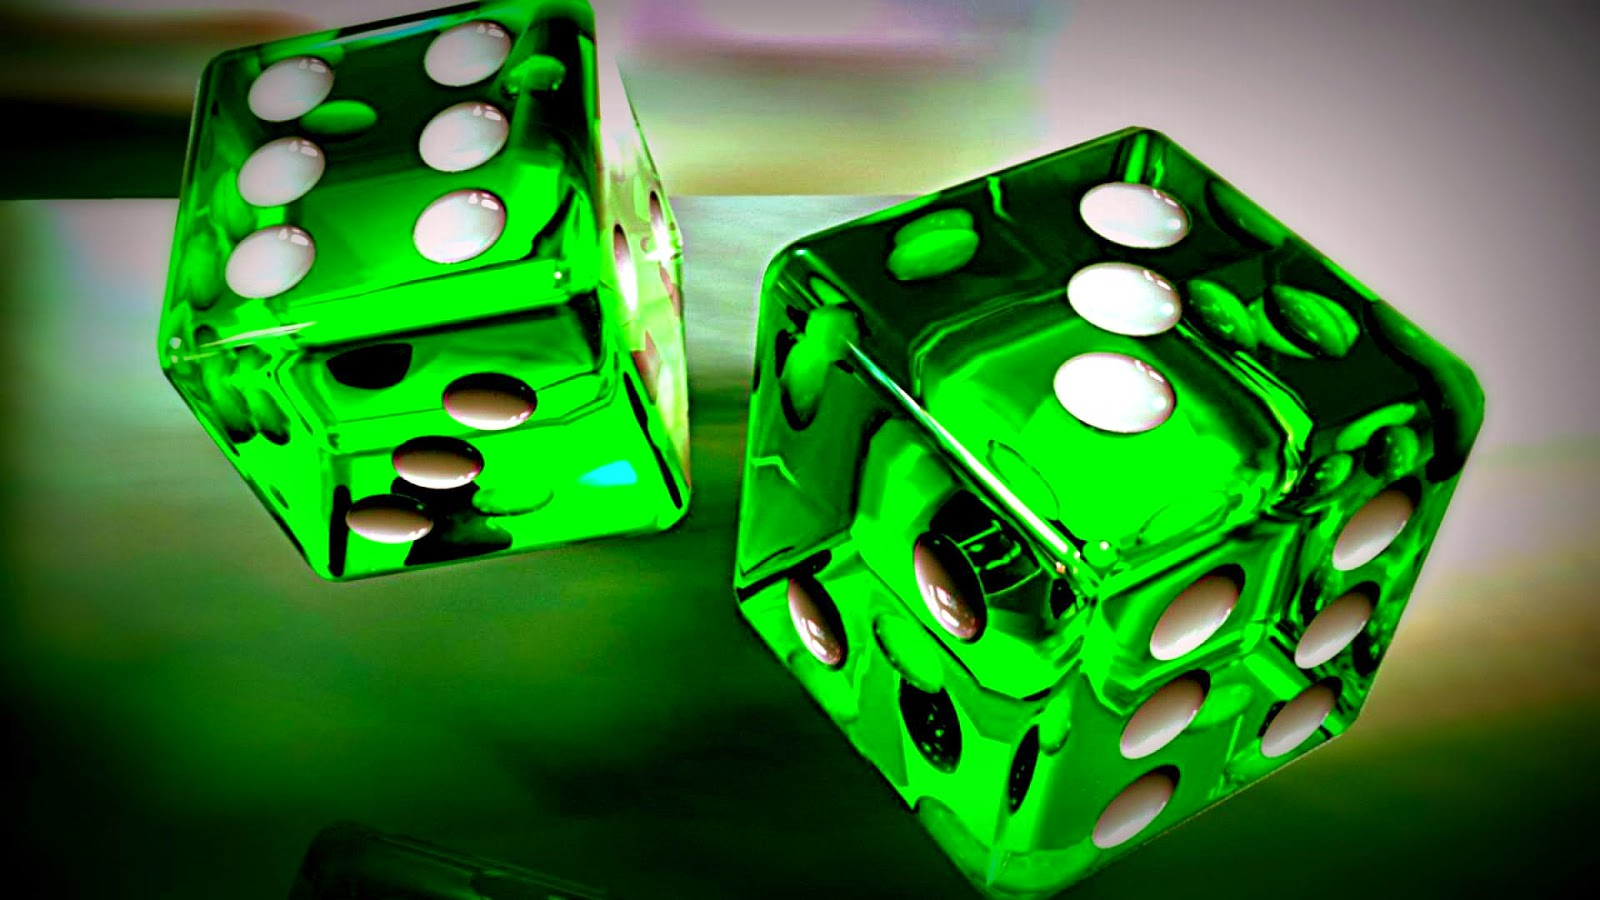 3d green dice hd wallpaper super wallpapers